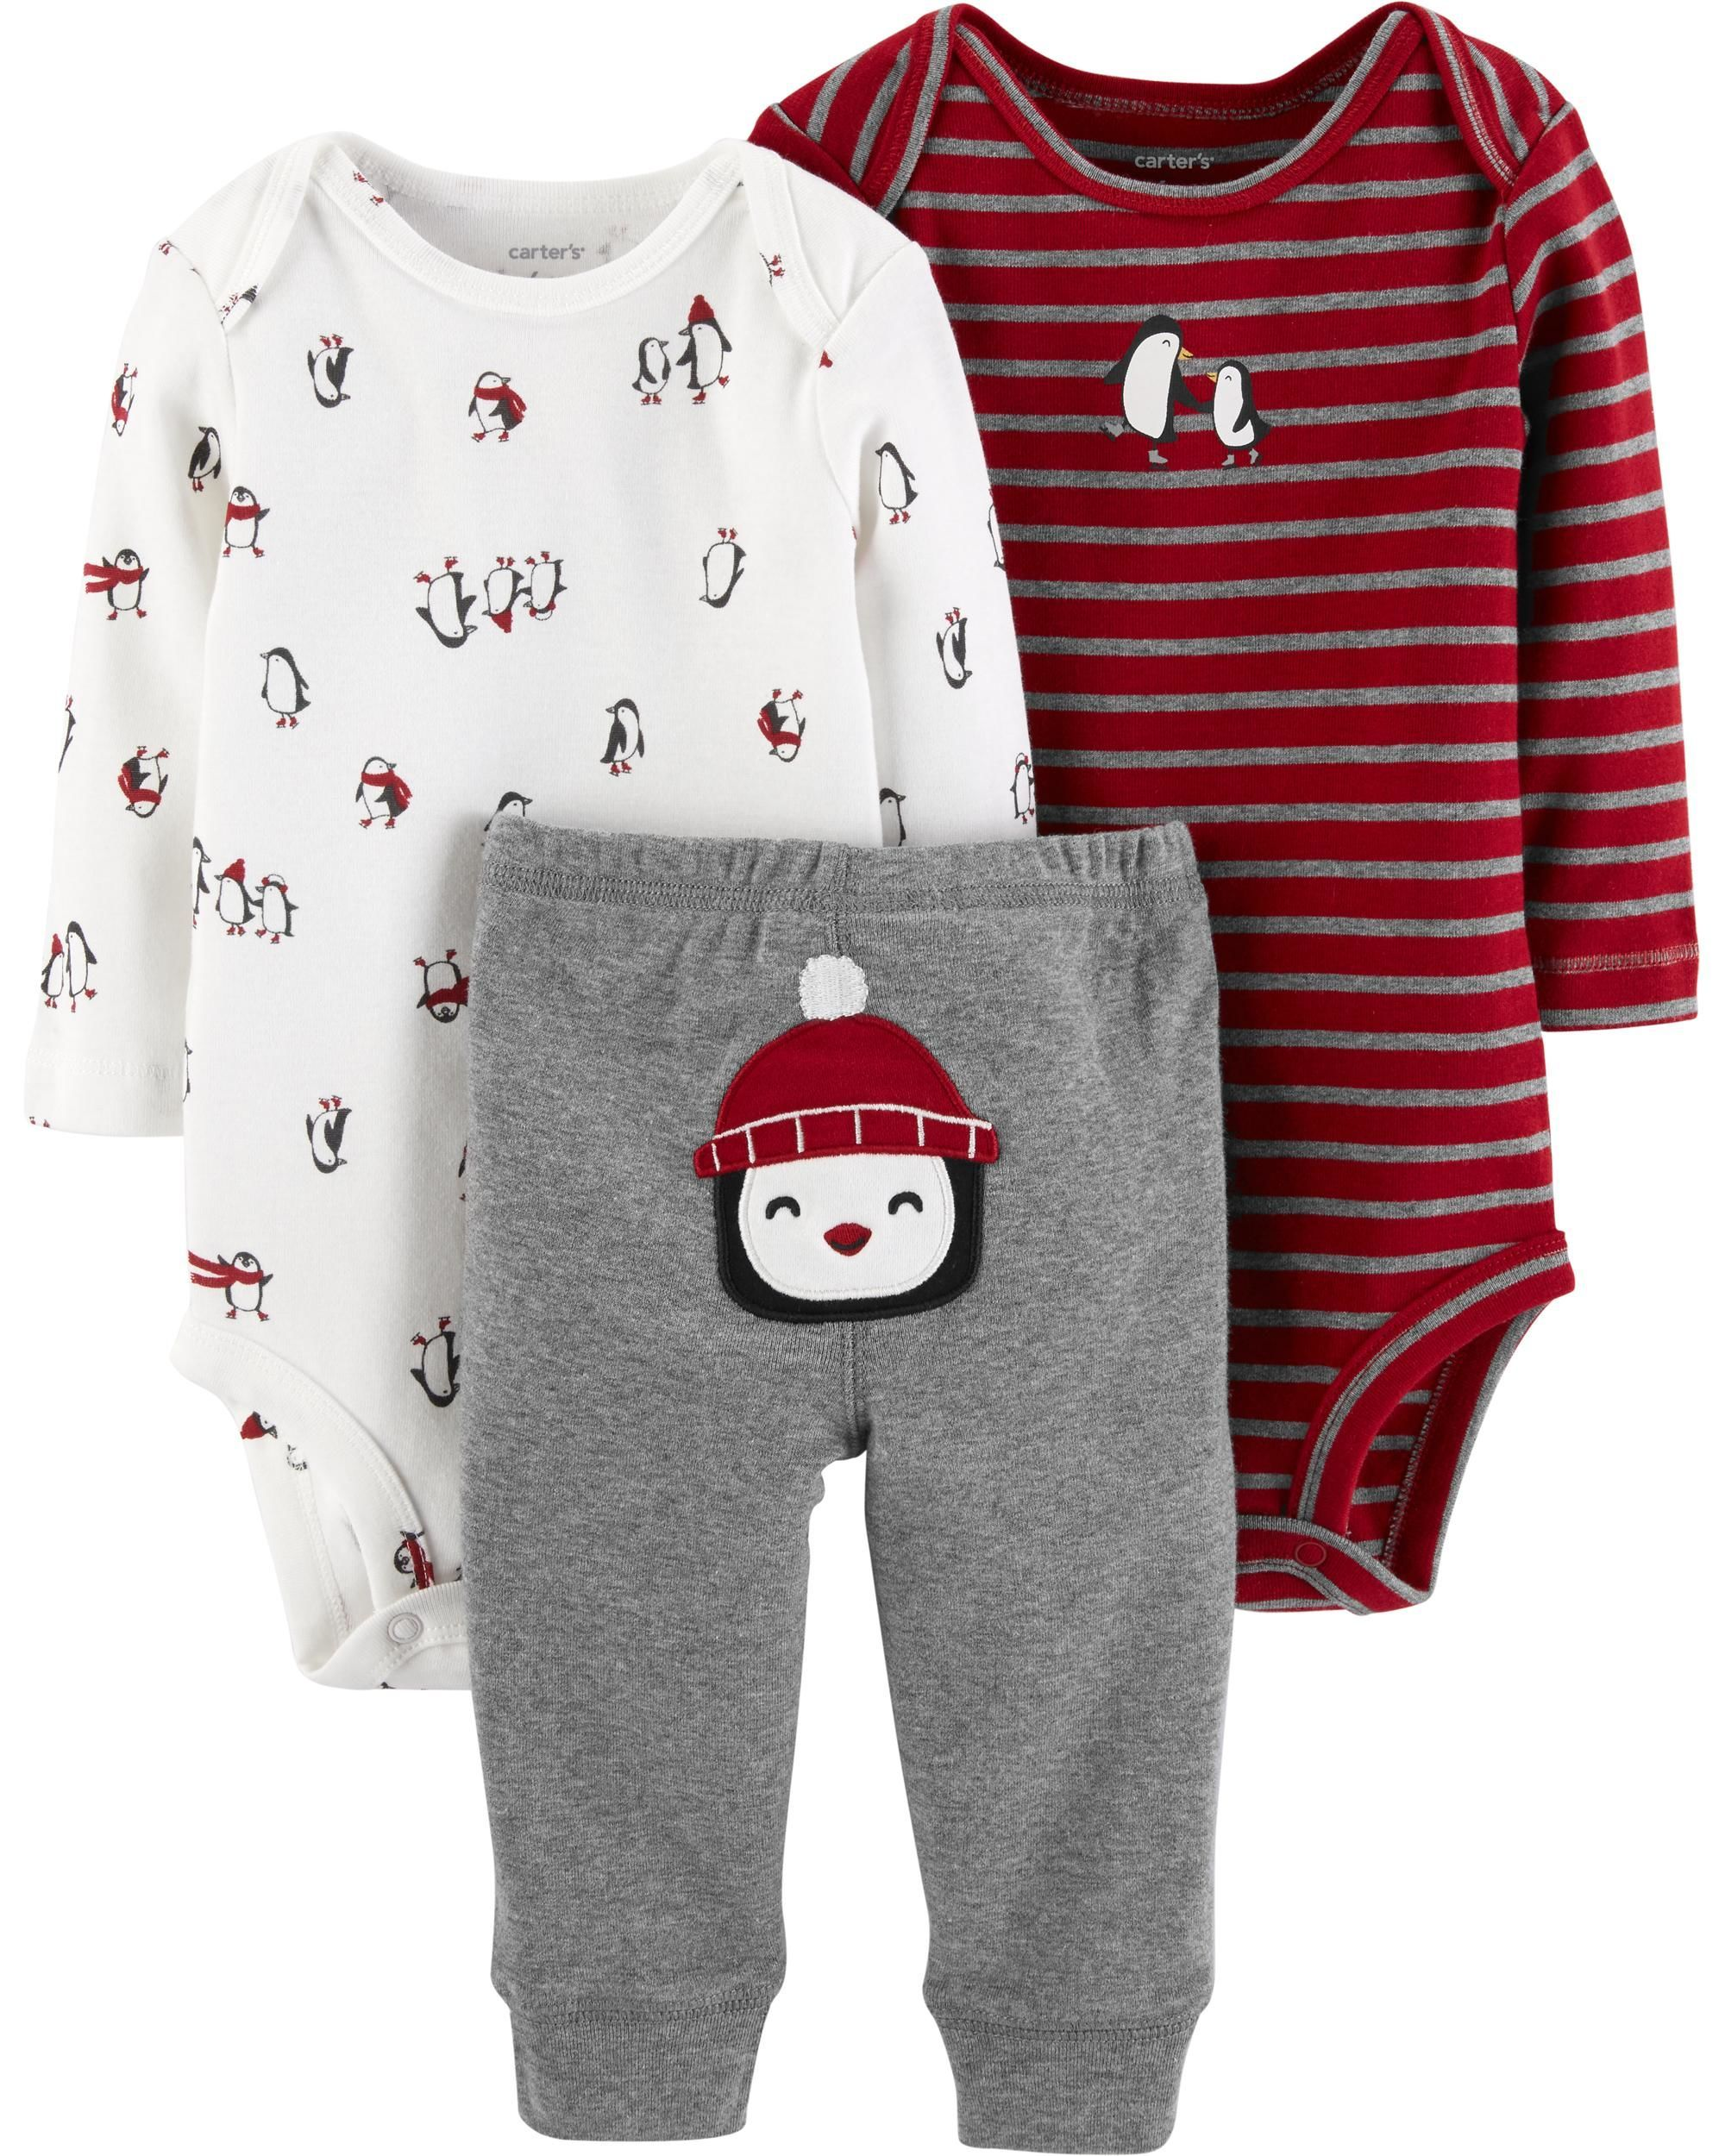 ad218ae03 3-Piece Little Character Set | Babies clothes | Kids outfits, Boy ...